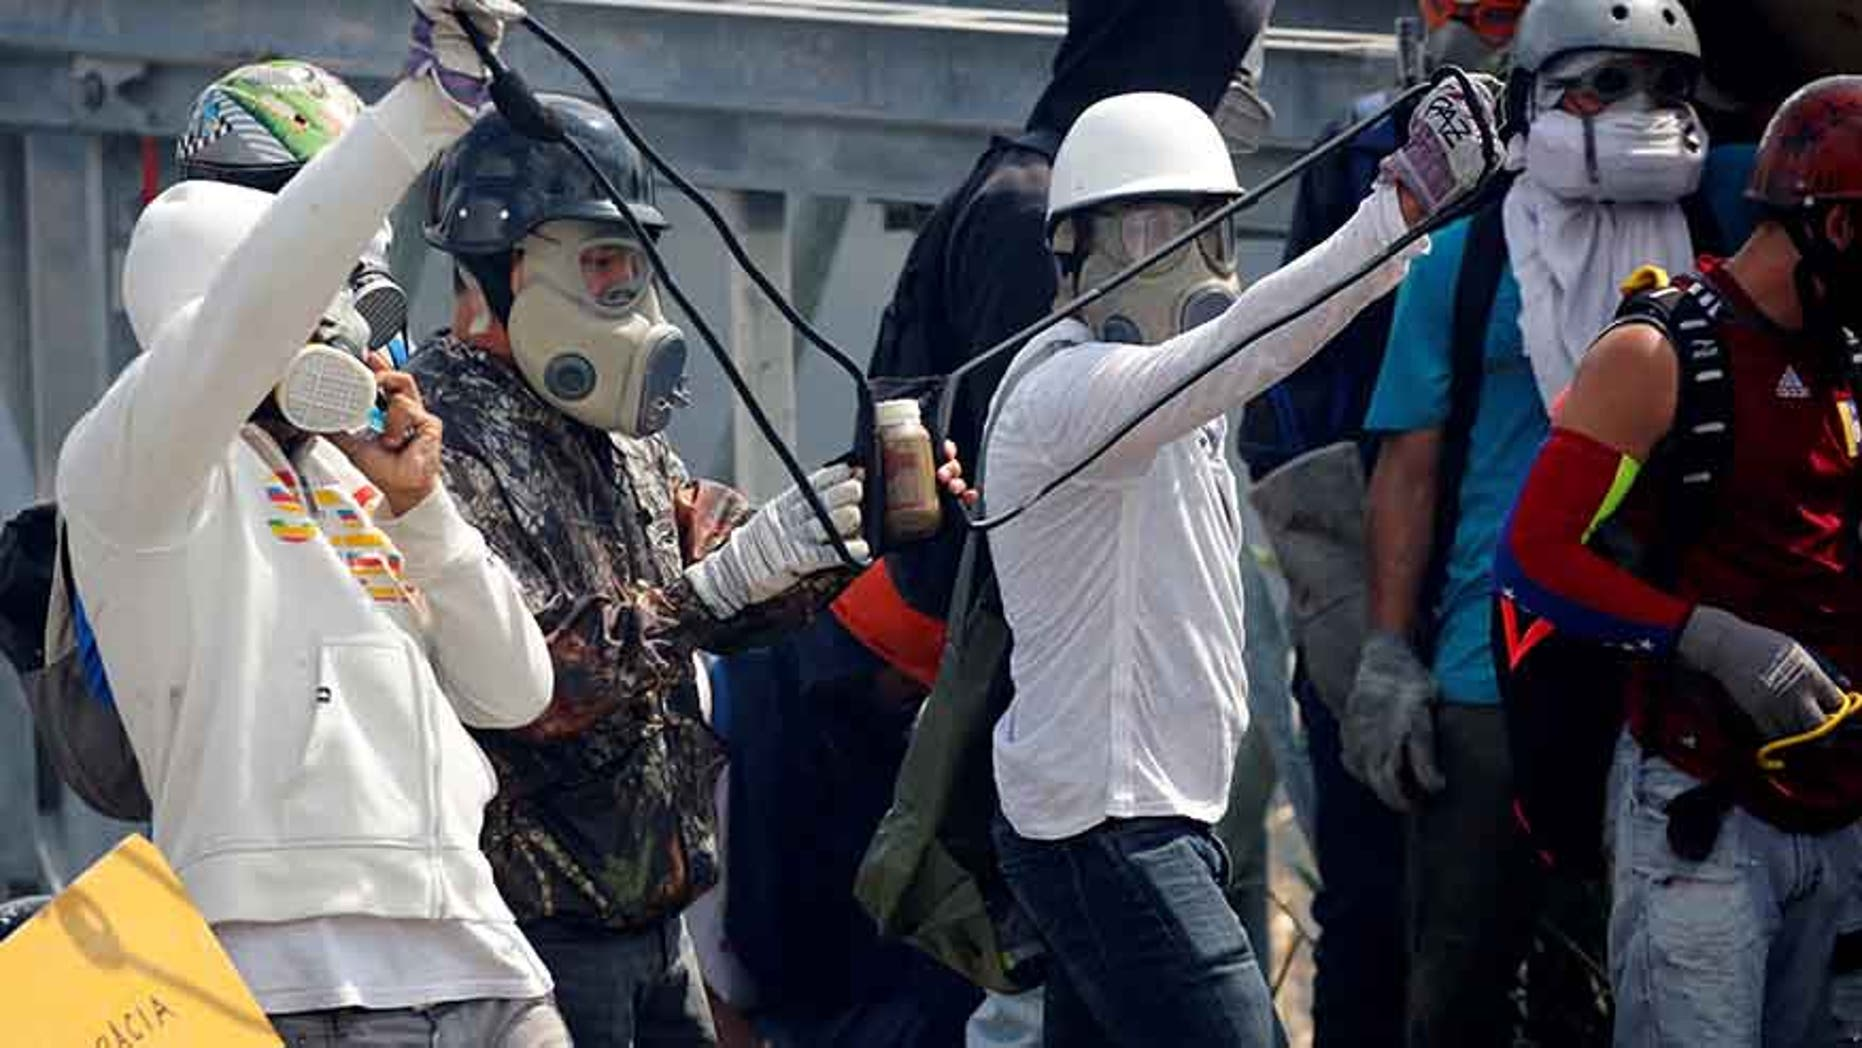 """Opposition supporters use a giant sling shot to throw a """"Poopootov,"""" a bottle filled with feces, which is a play on Molotov, during a rally in Caracas, Venezuela, May 10, 2017."""